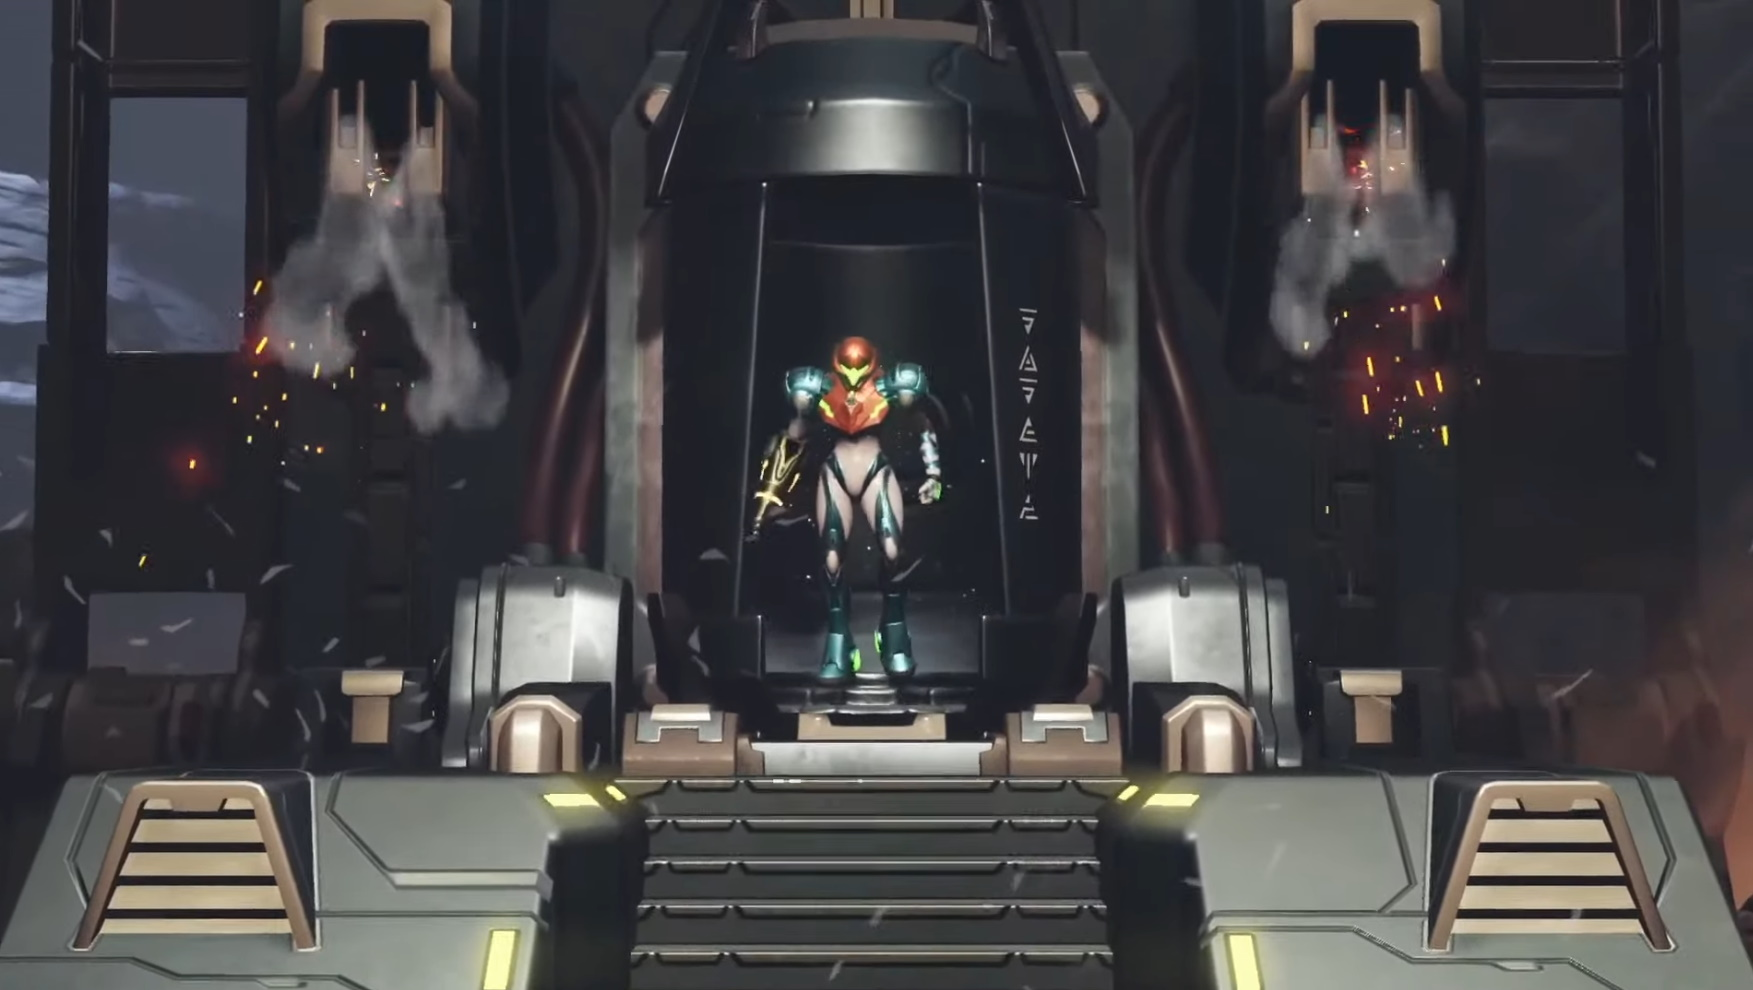 Samus steps out of a chamber in a screenshot from Metroid Dread.